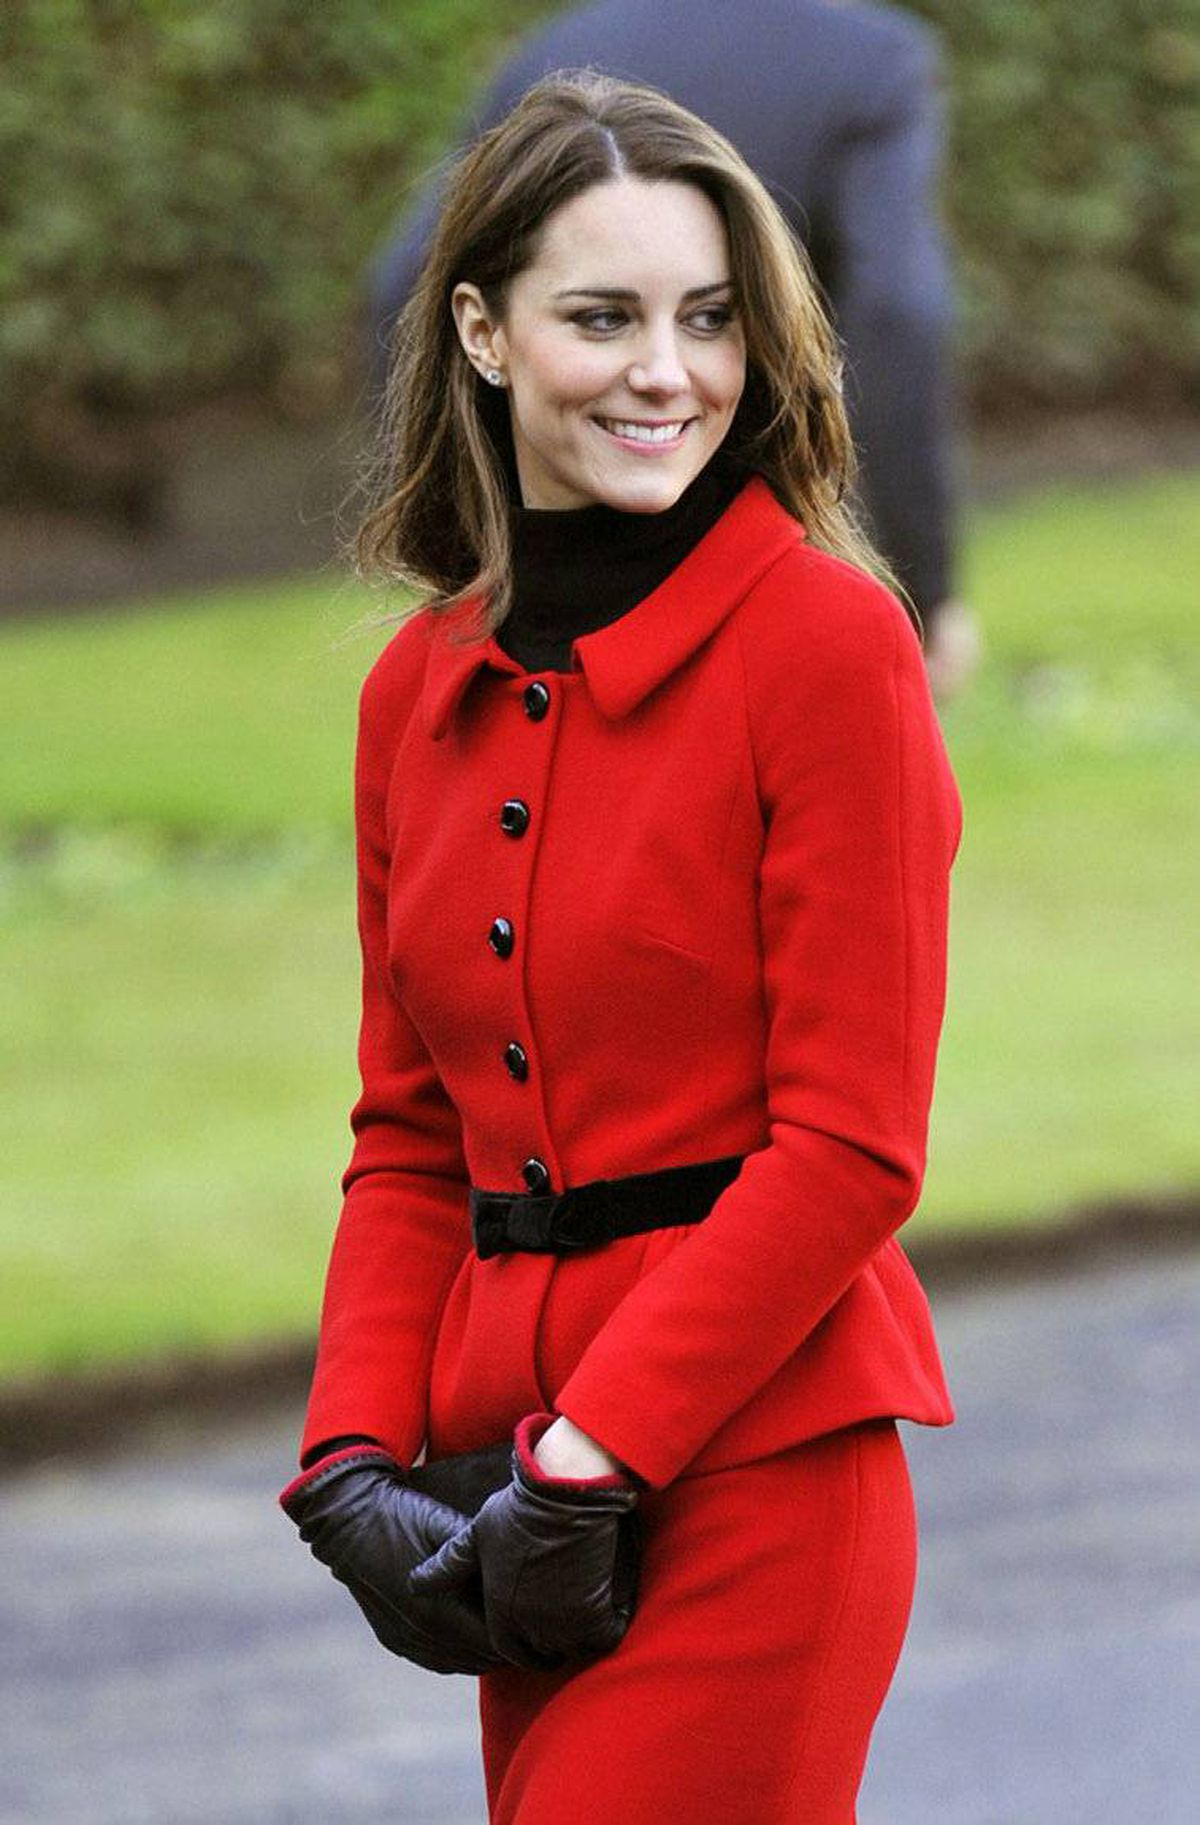 Kate Middleton smiles during their visit to St. Andrews University in Fife, Scotland February 25, 2011. The couple made their second official visit together since announcing their engagement in November to St. Andrews University to launch its 600th anniversary celebrations.